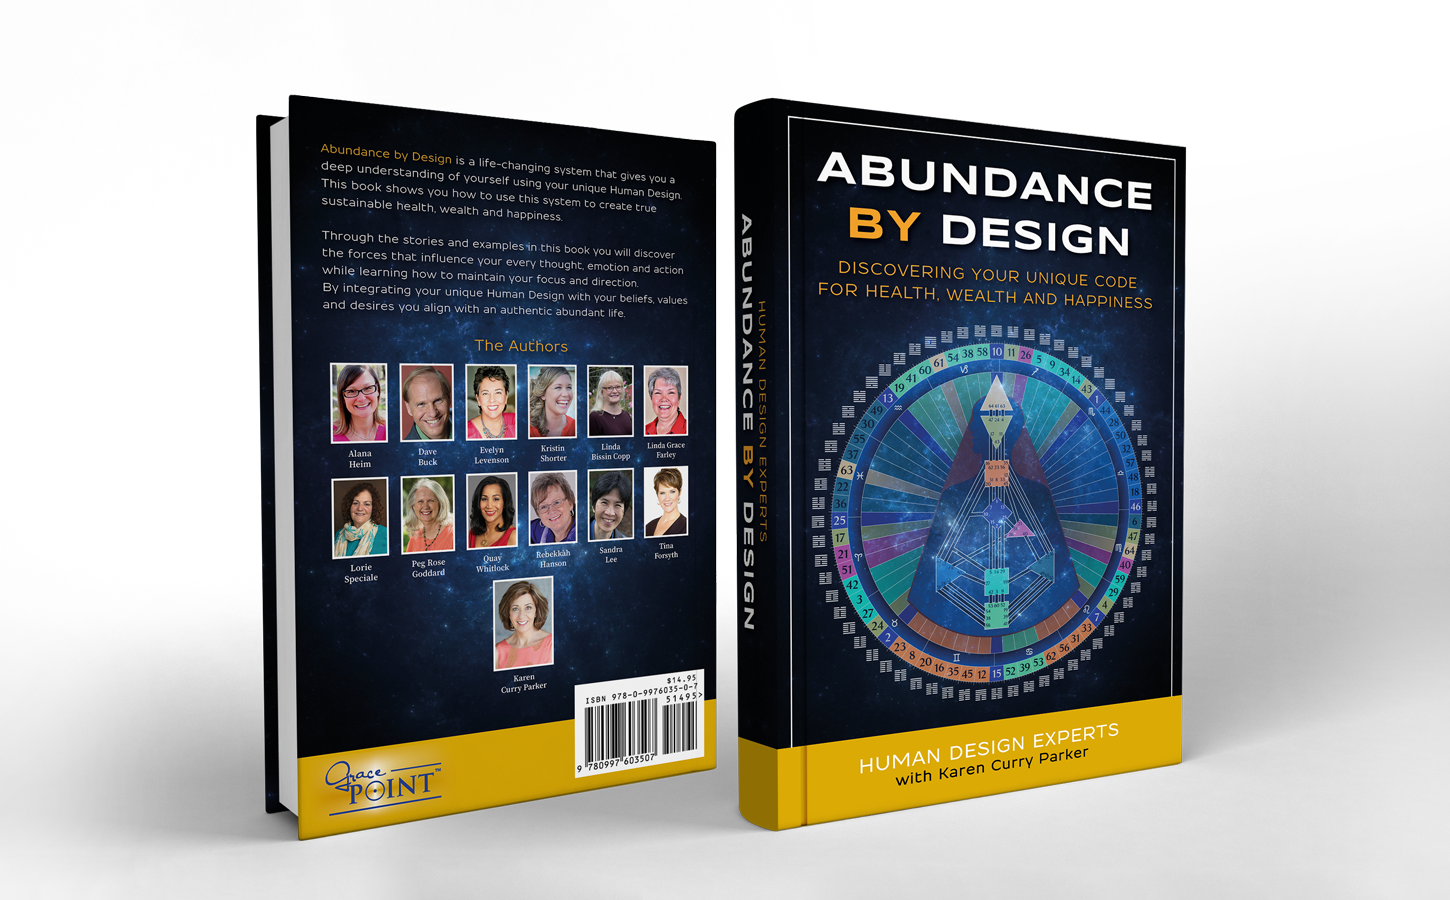 Human Design Experts contributing to Abundance By Design book